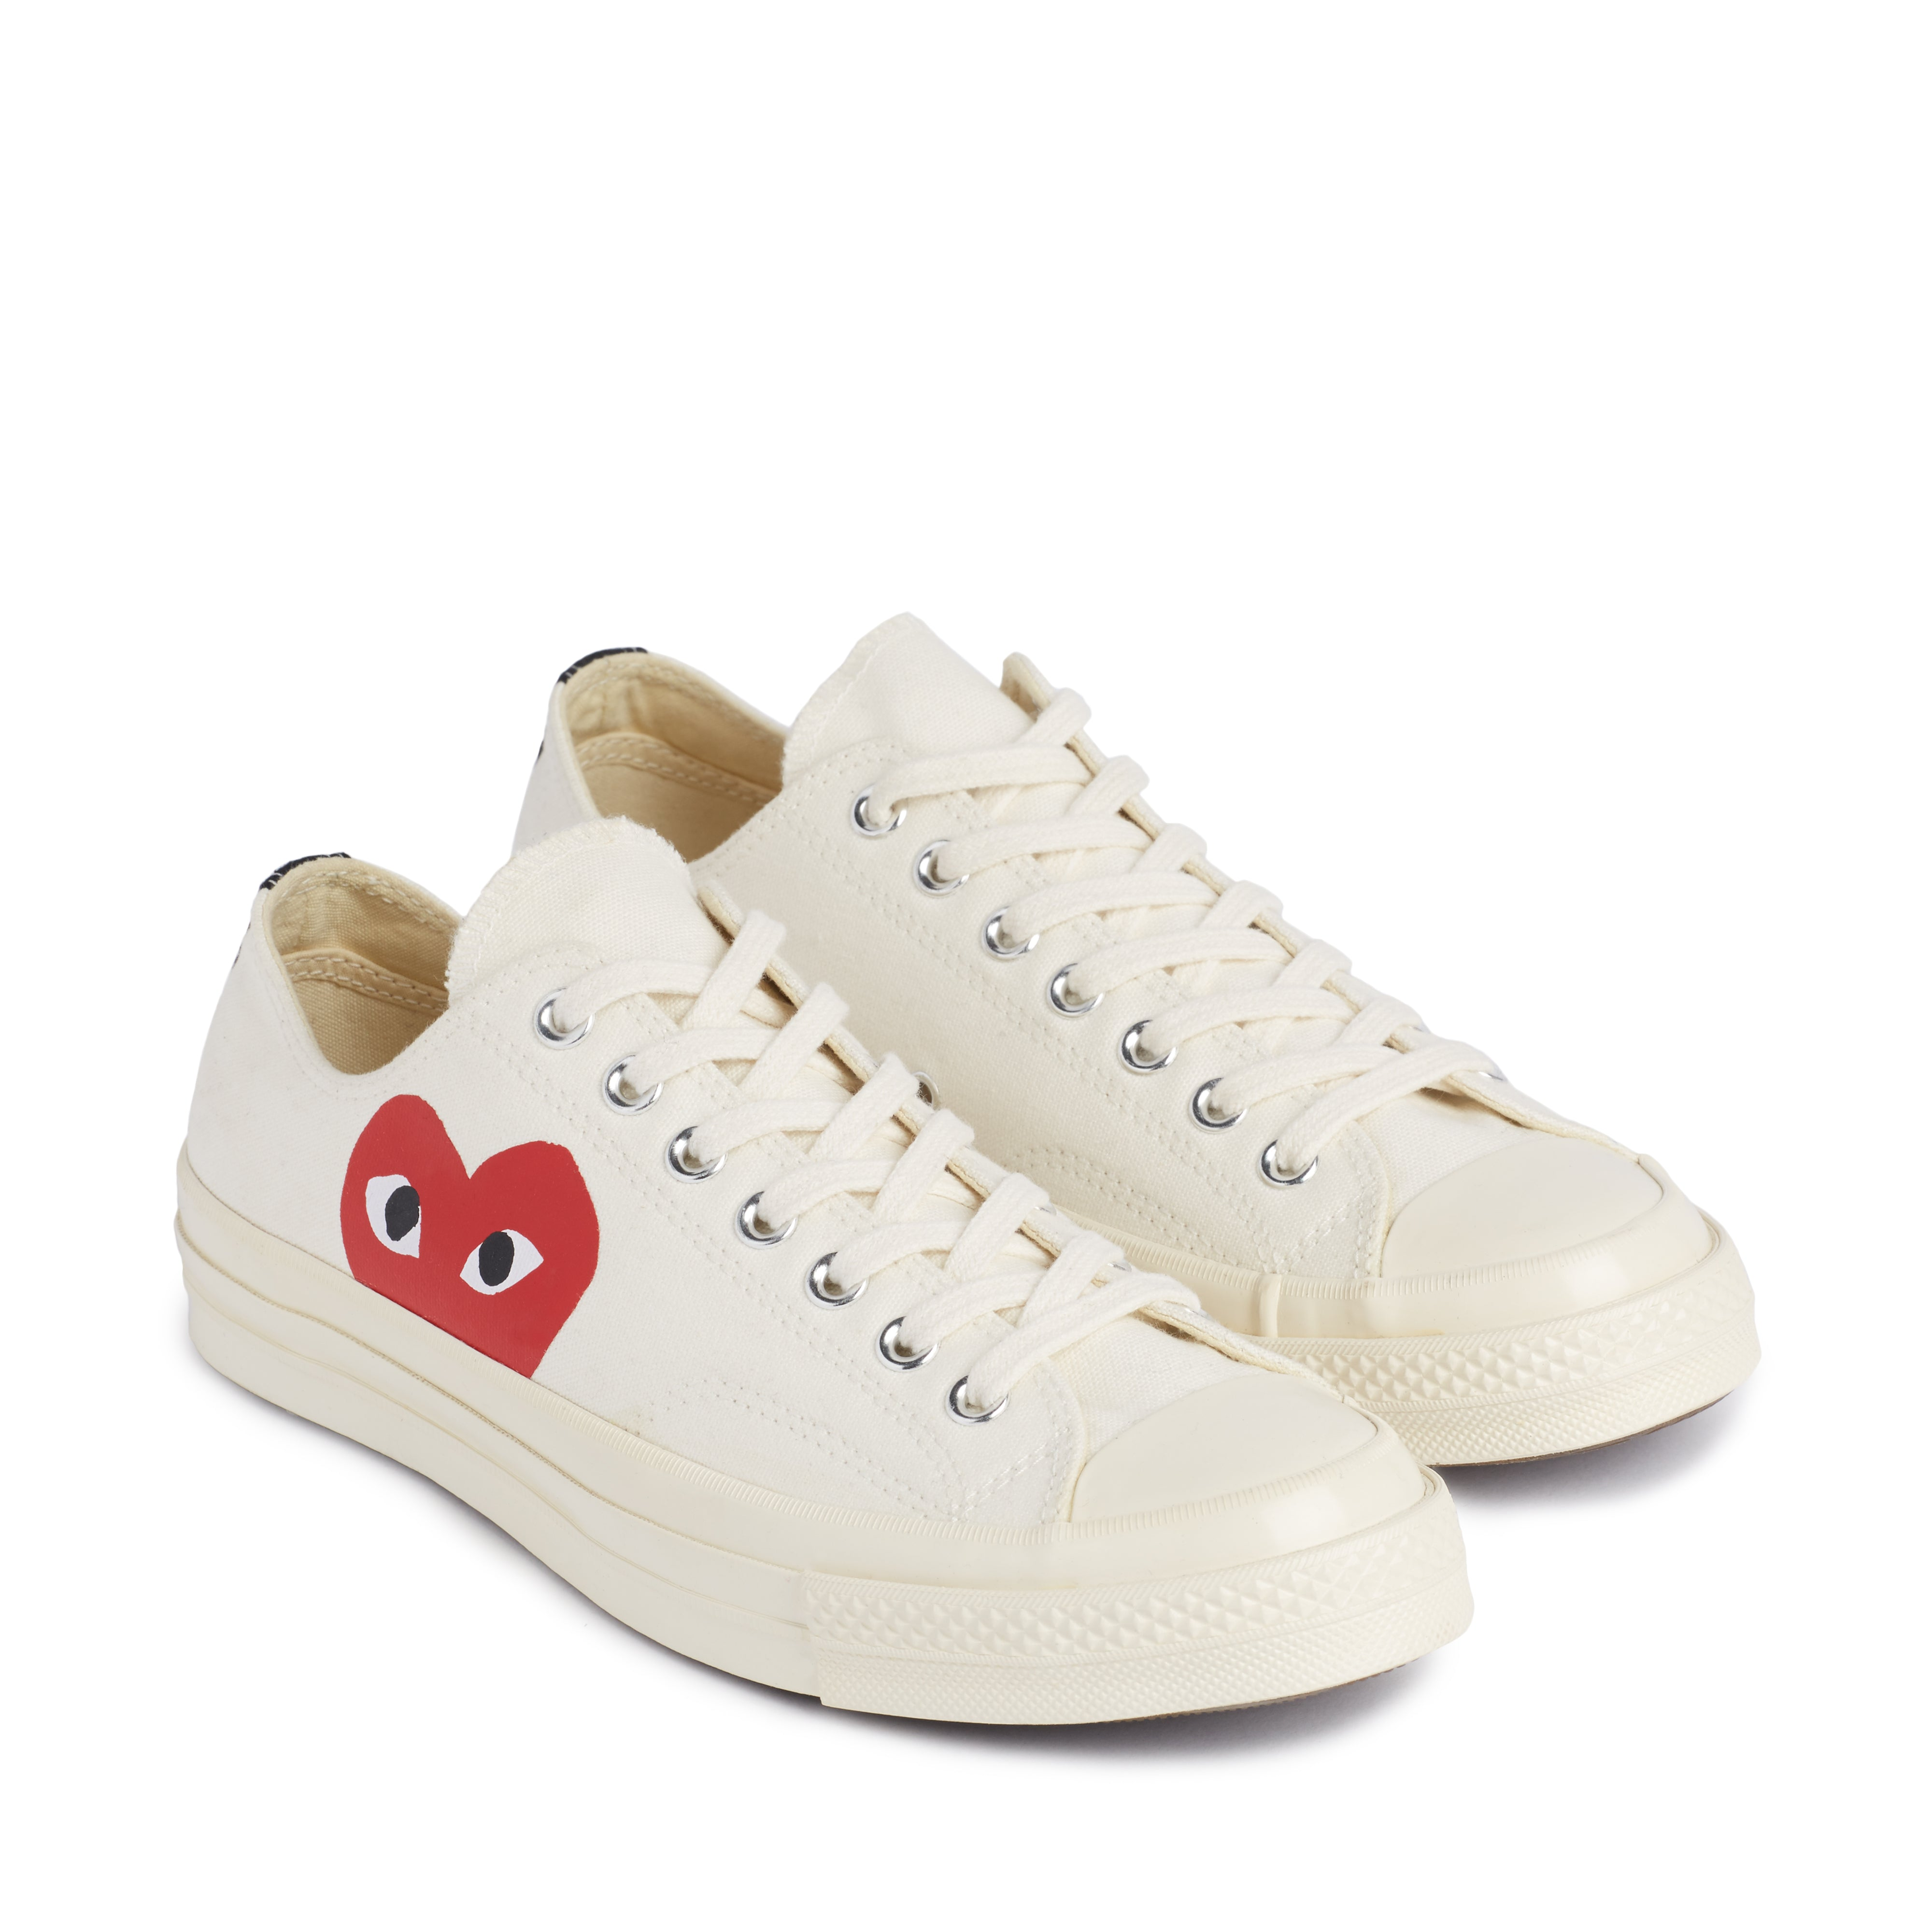 Play Comme des Garçons x Converse Red Heart Chuck Taylor All Star '70 Low (White)